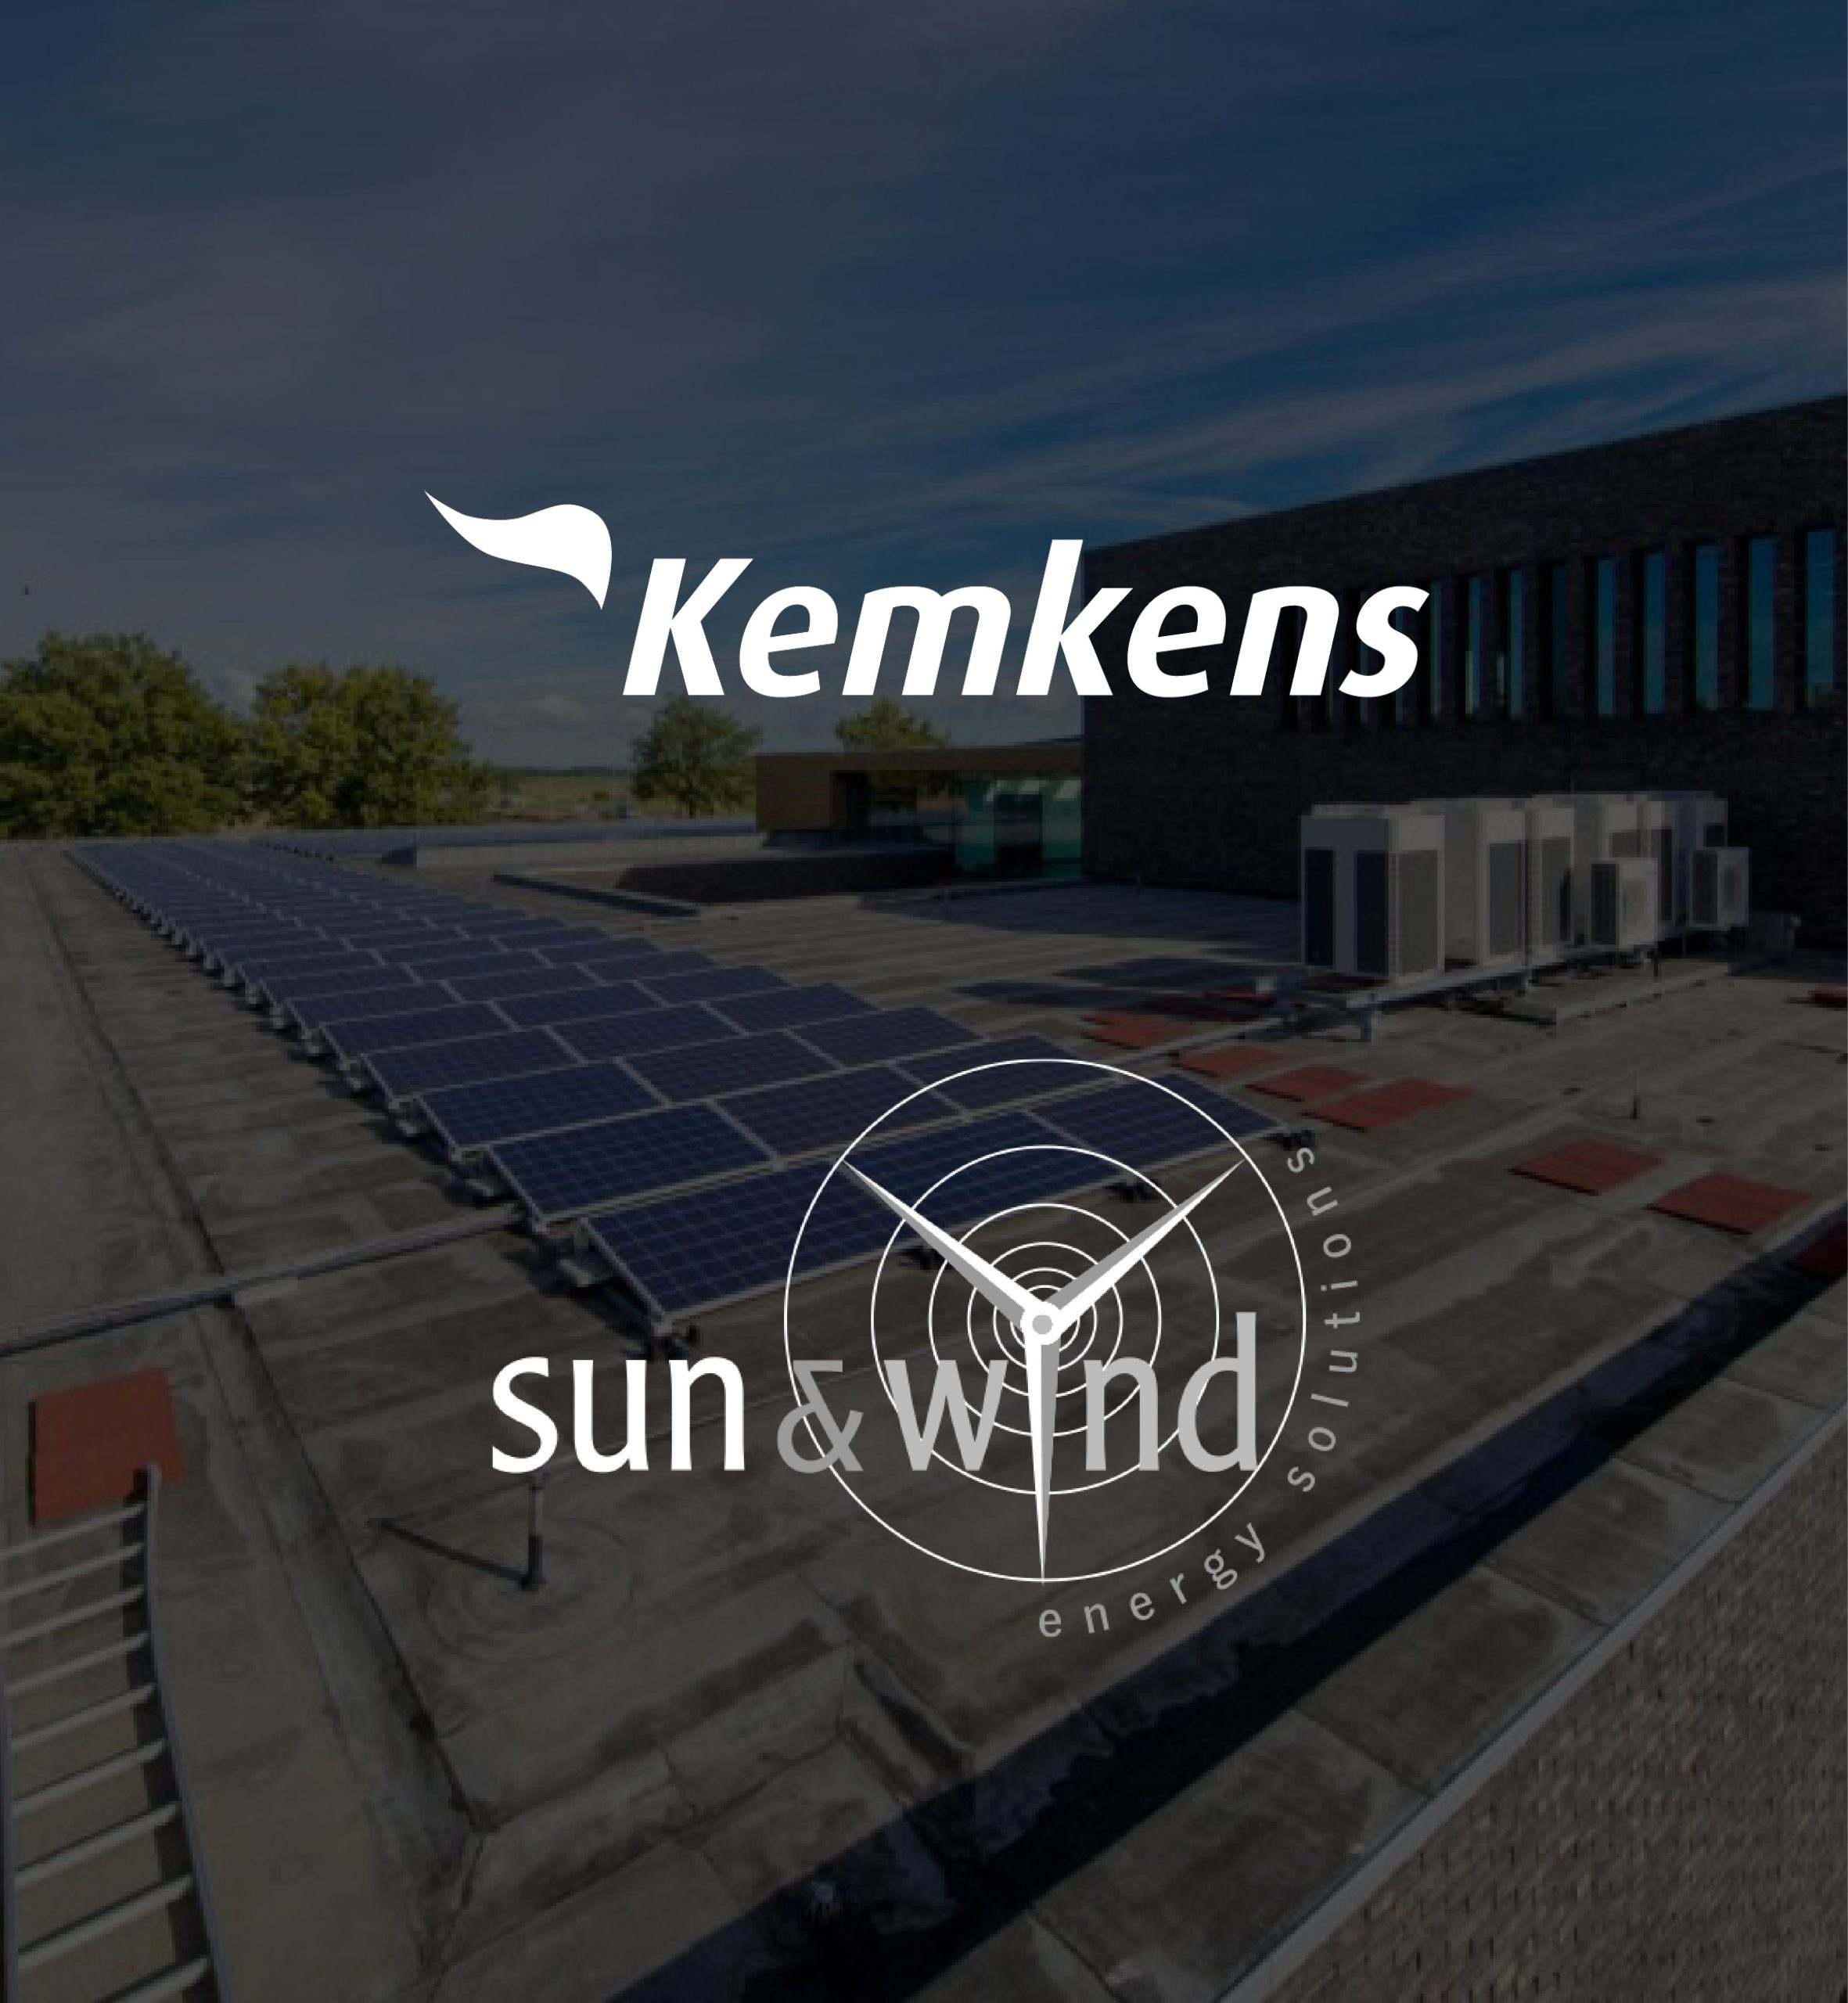 DEX international M&A advised Sun & Wind on the sale to Kemkens BV